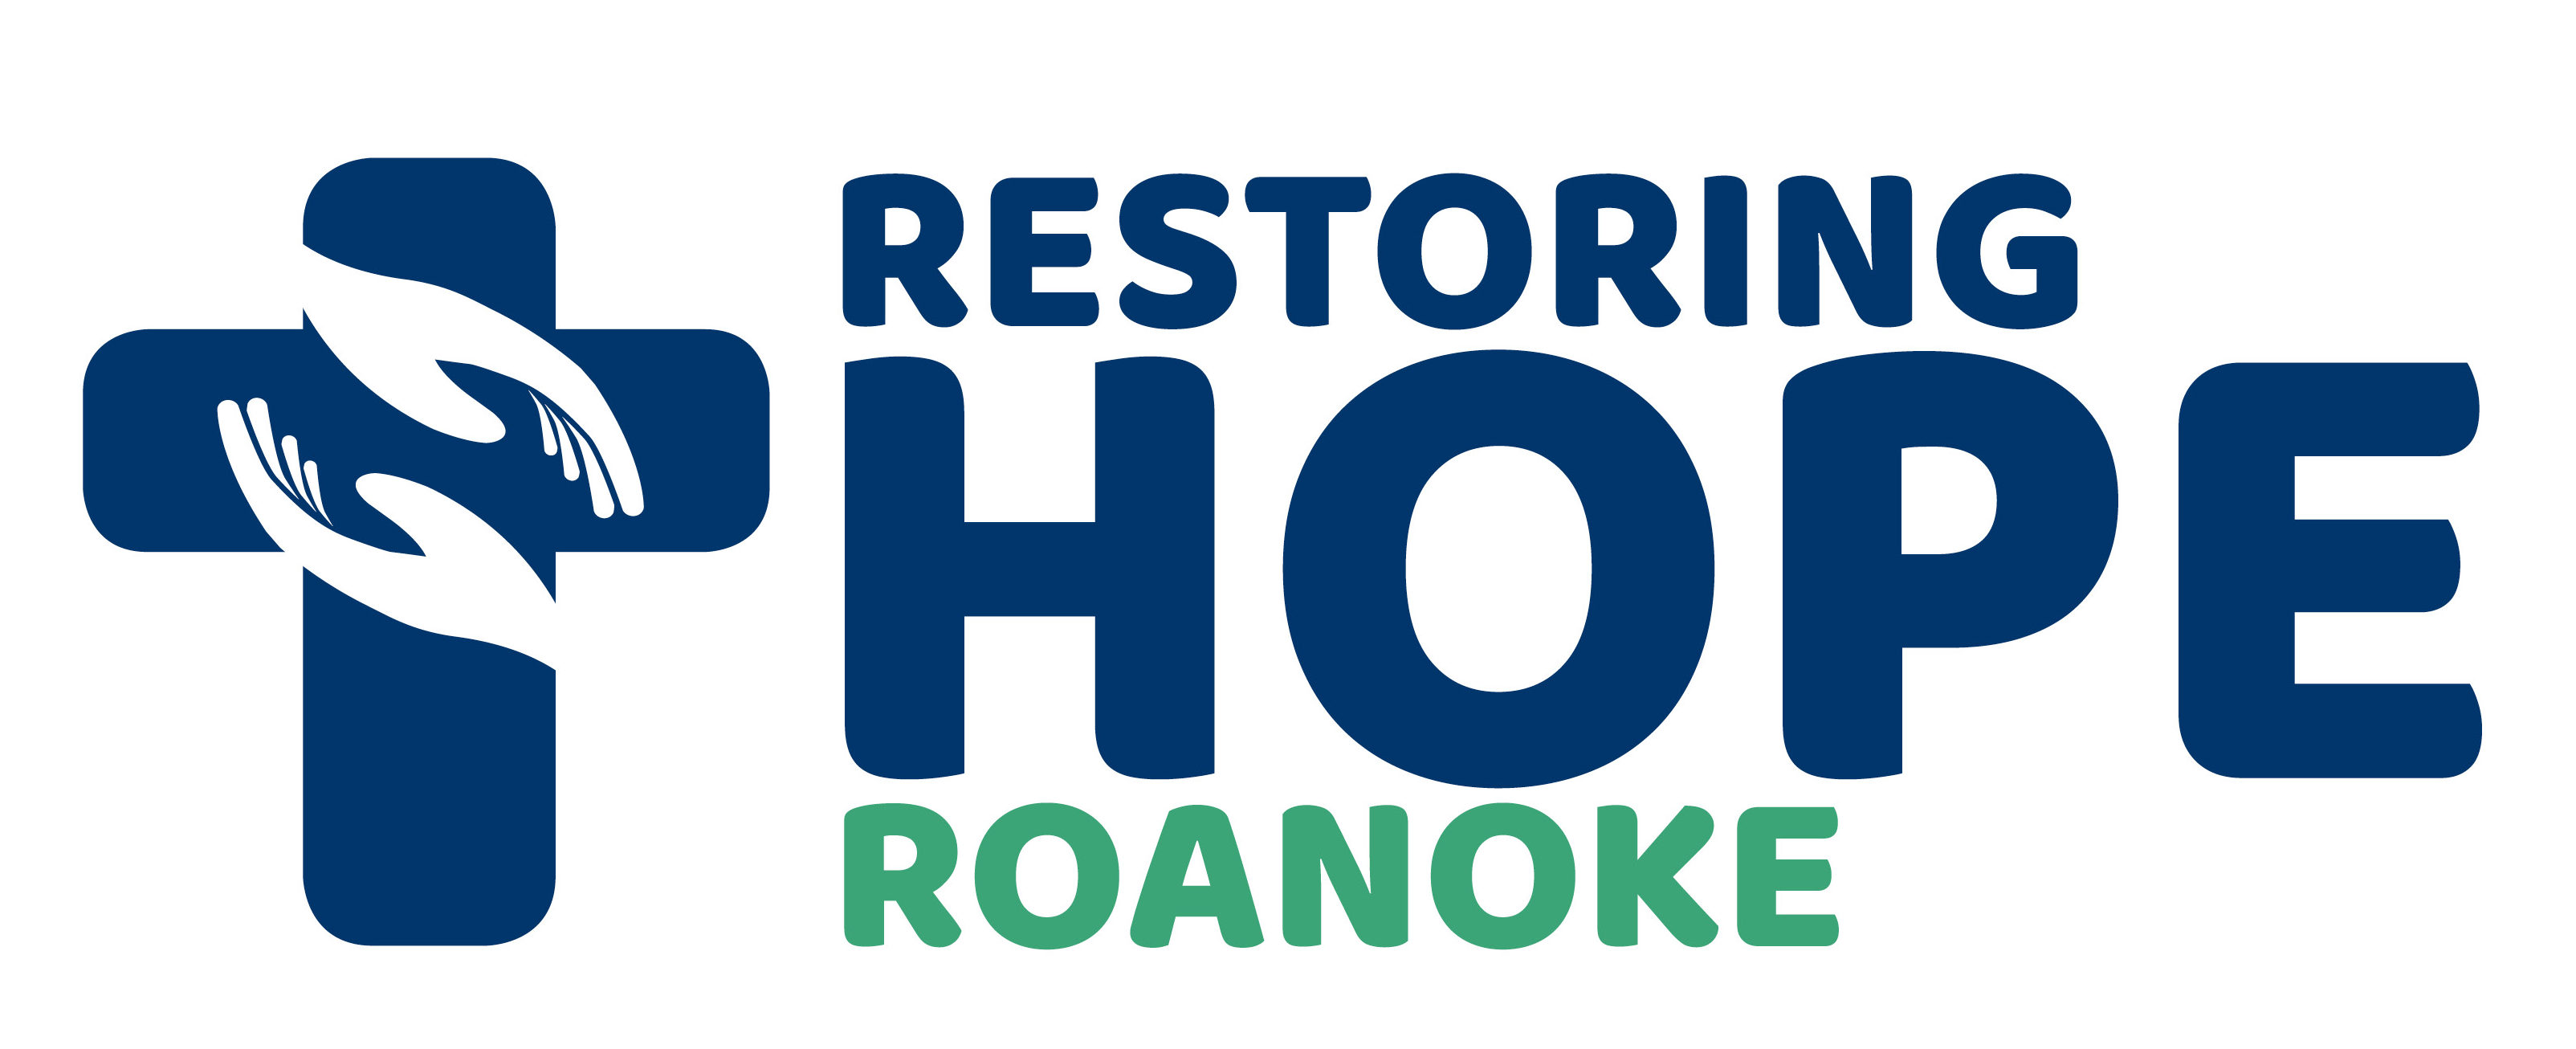 Restoring Hope Roanoke